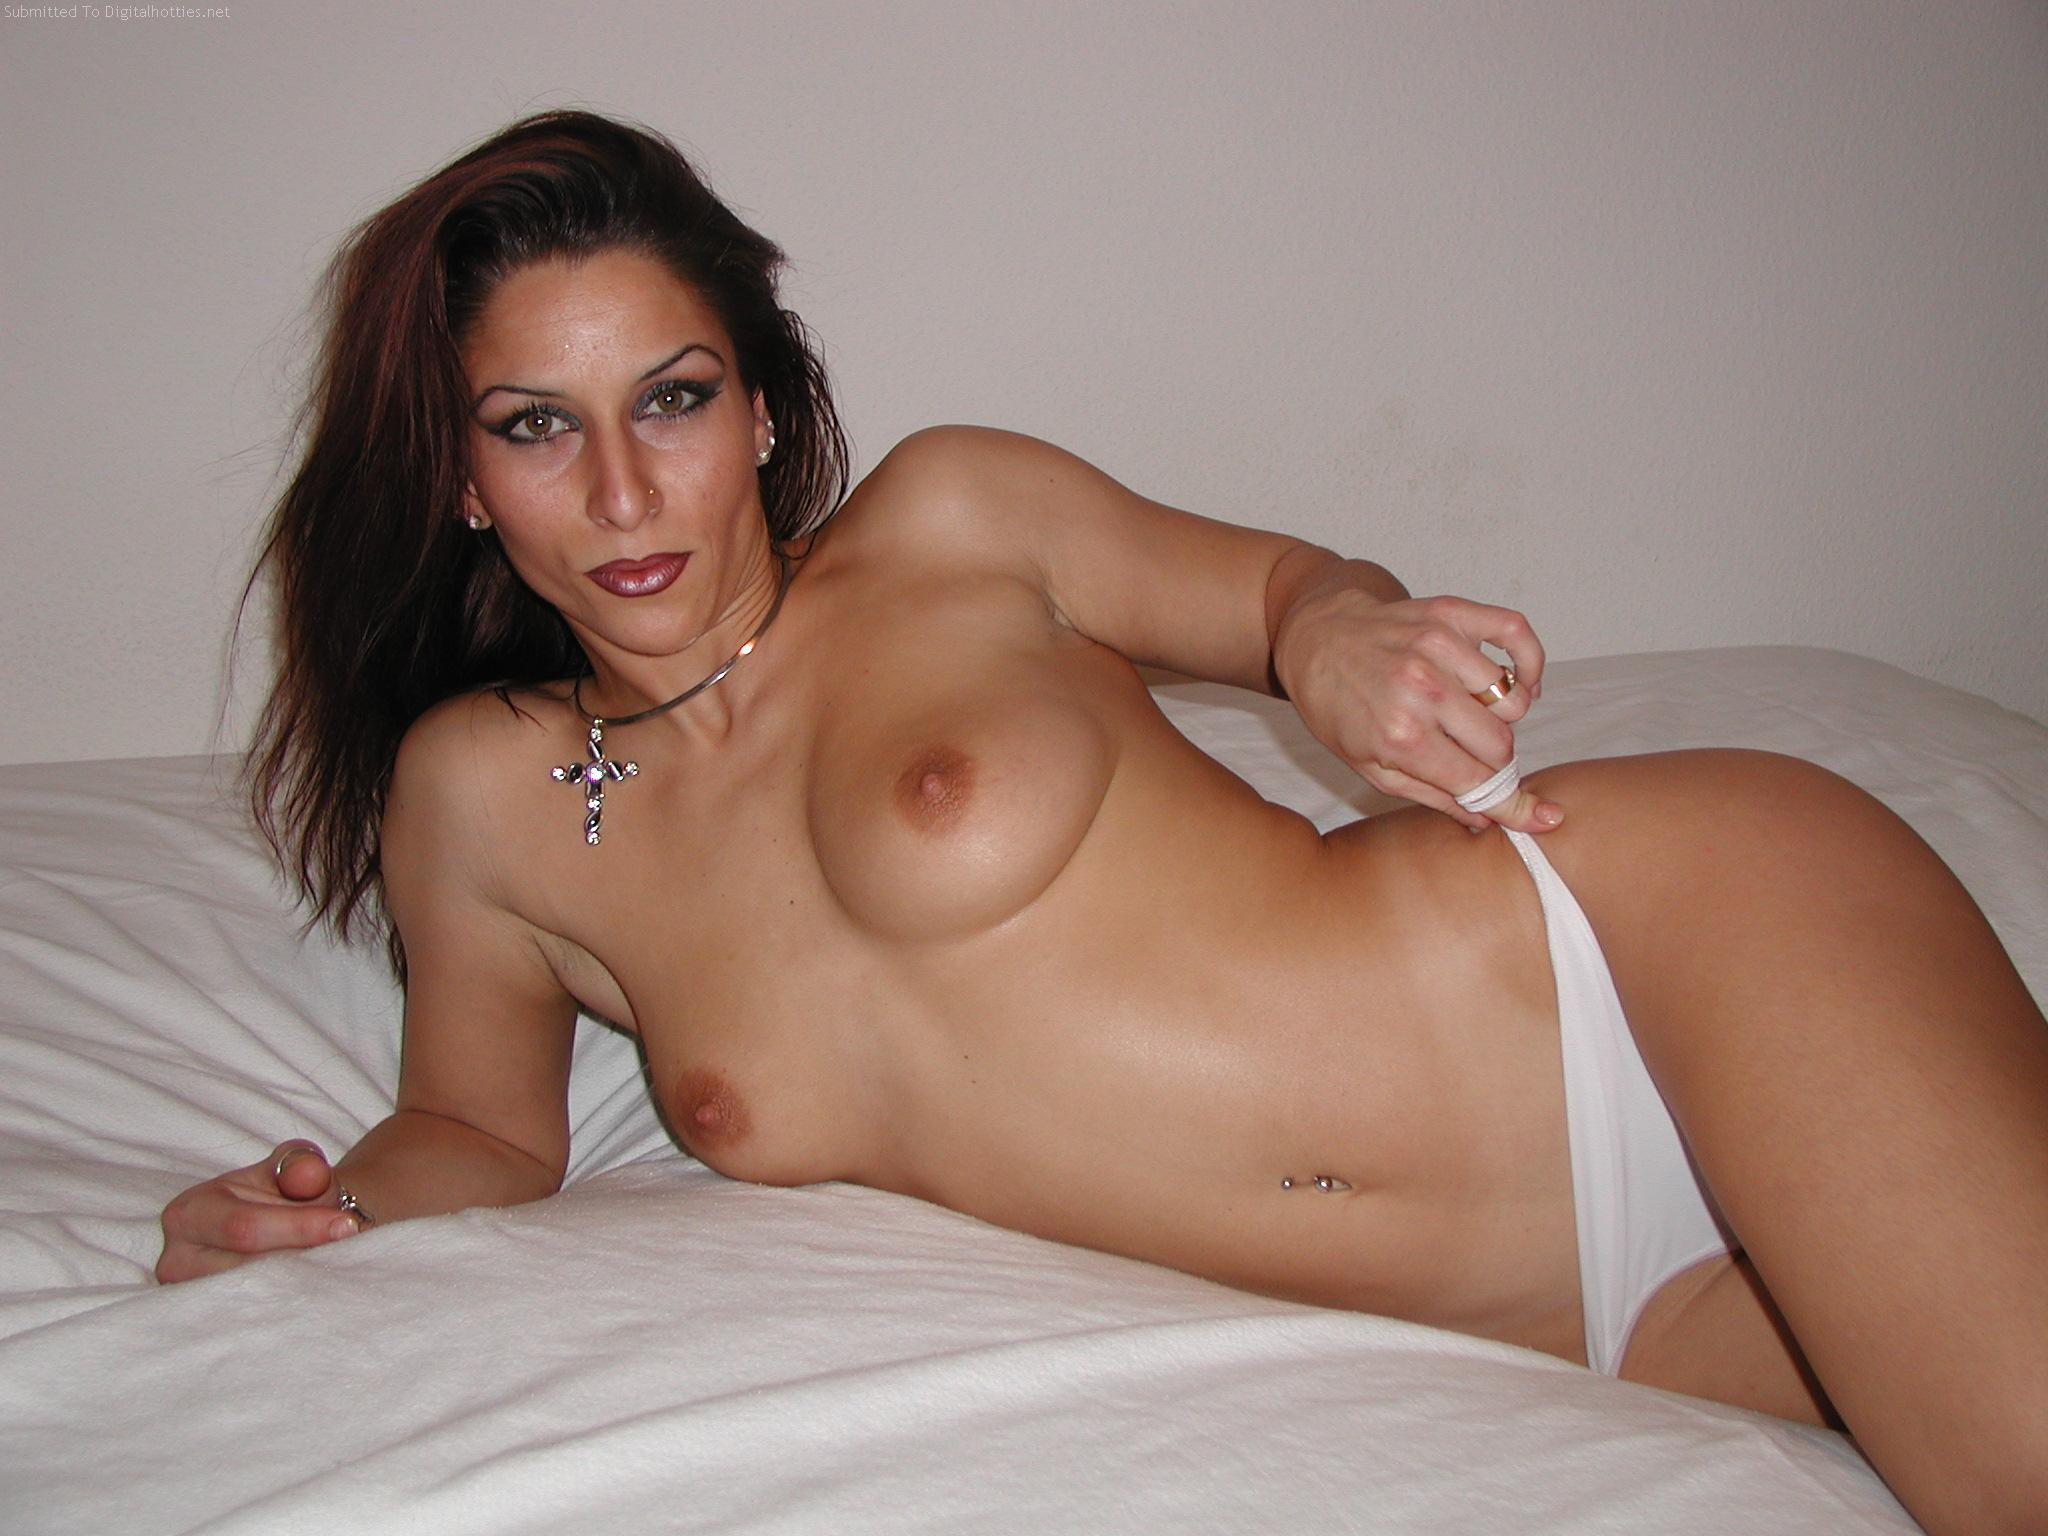 Amazing French MILF exposing her boobs lying on the bed. Brunette MILF lady flaunts her natural tits in nude picture